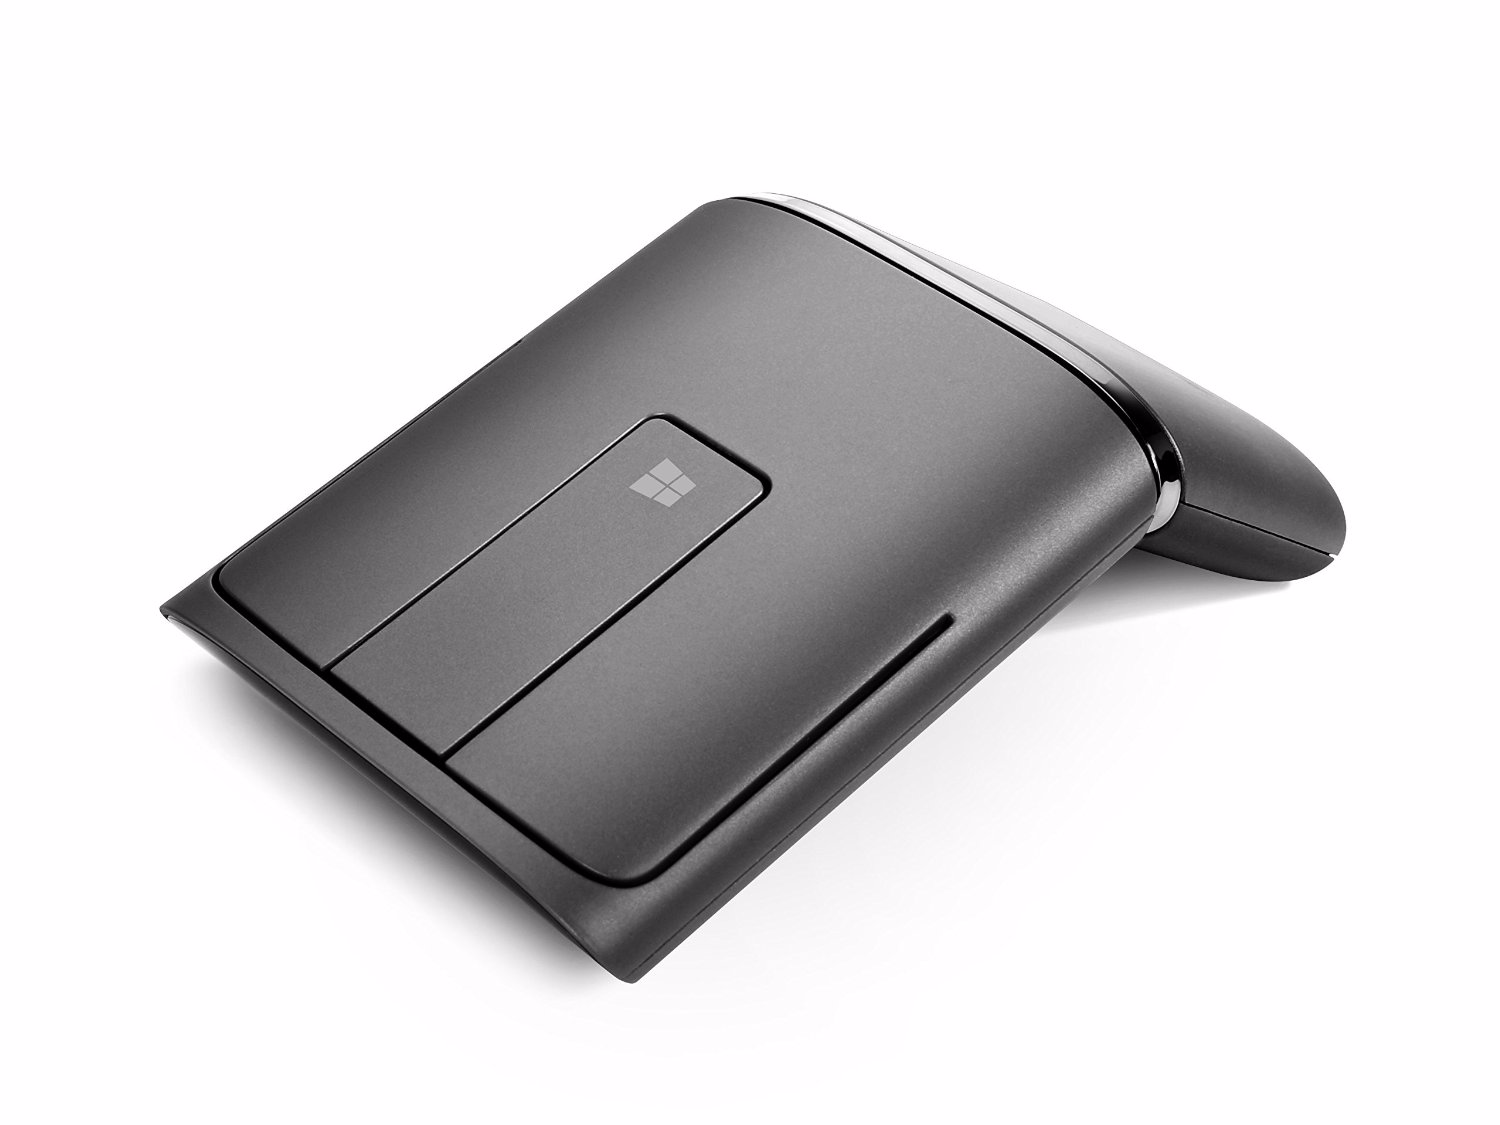 Lenovo's mouse can flatten and twist into different shapes.